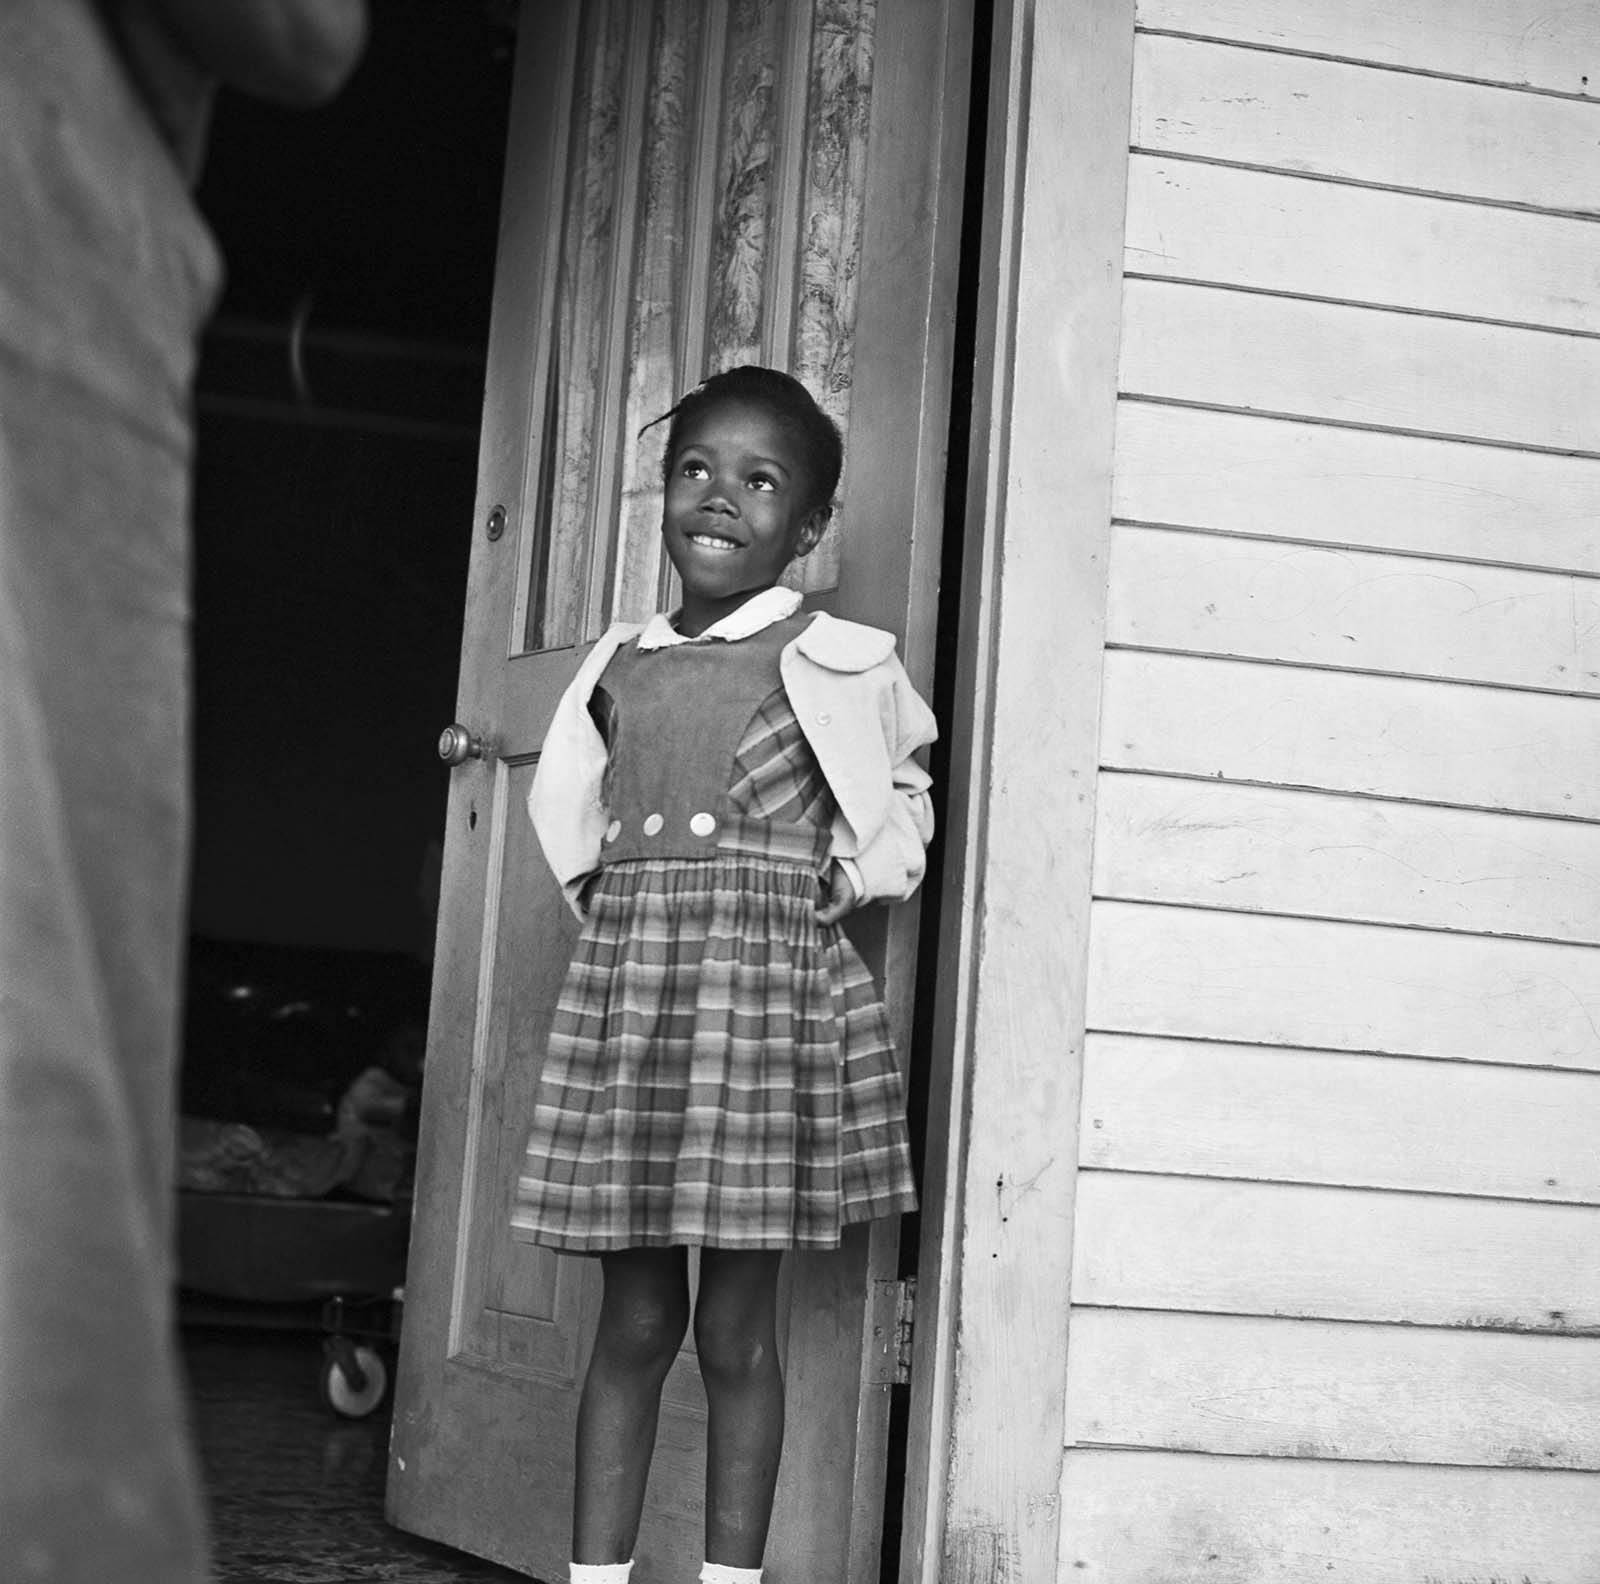 Ruby Nell Bridges at age 6, was the first African American child to attend William Franz Elementary School in New Orleans after Federal courts ordered the desegregation of public schools.